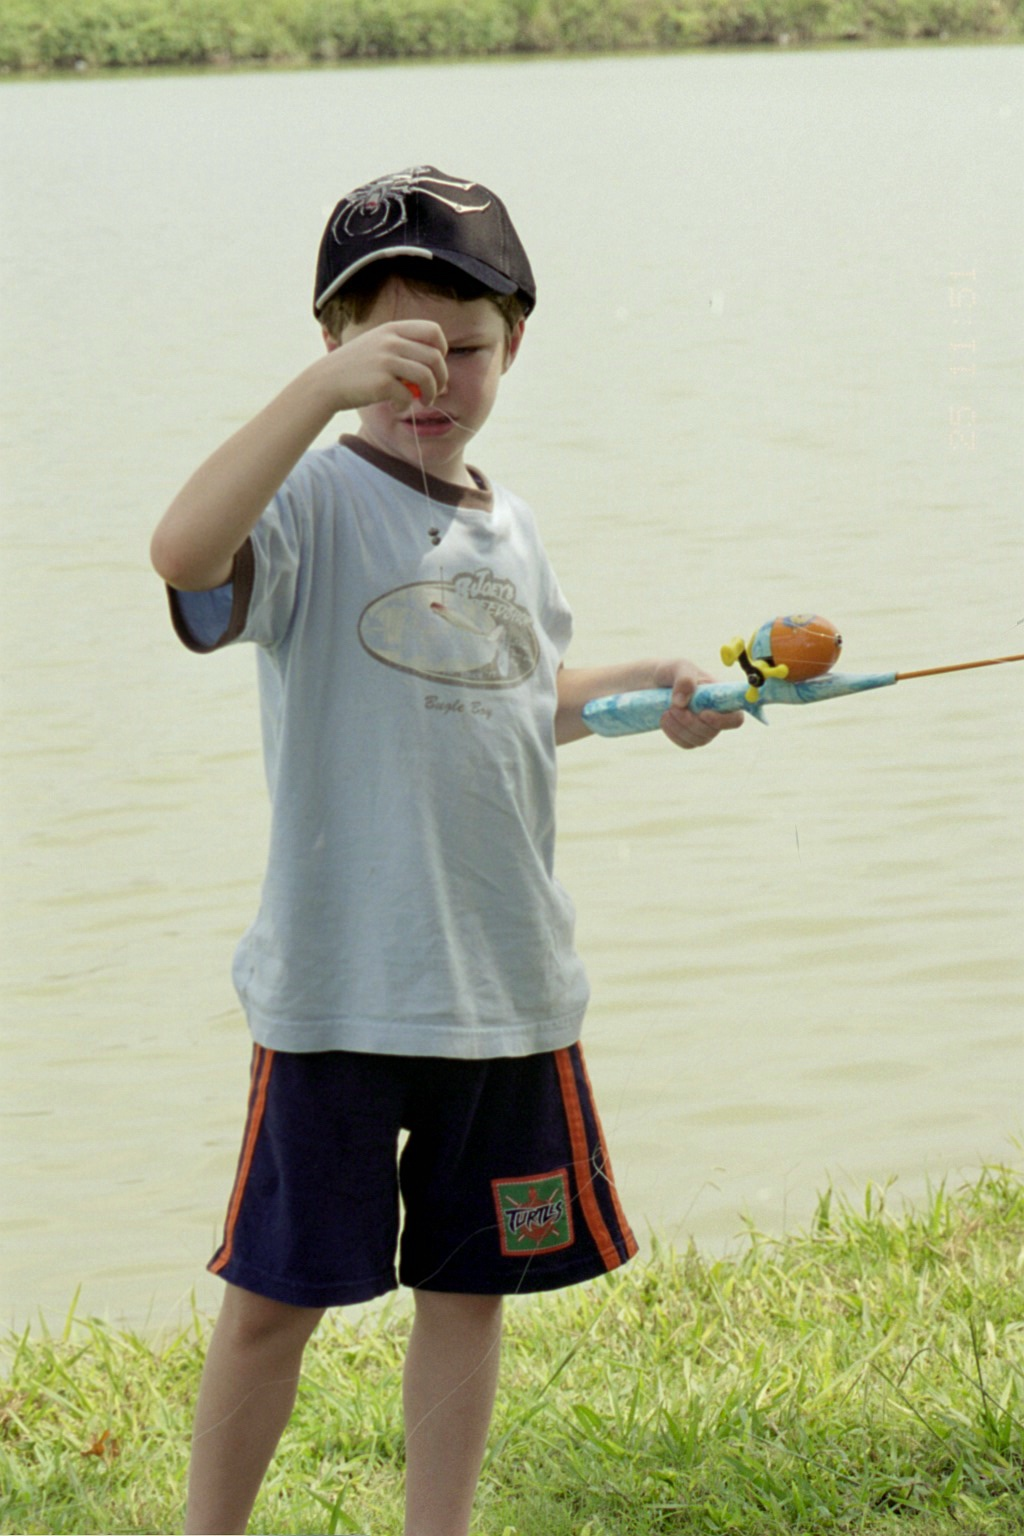 fishing_at_msu_2004c.jpg